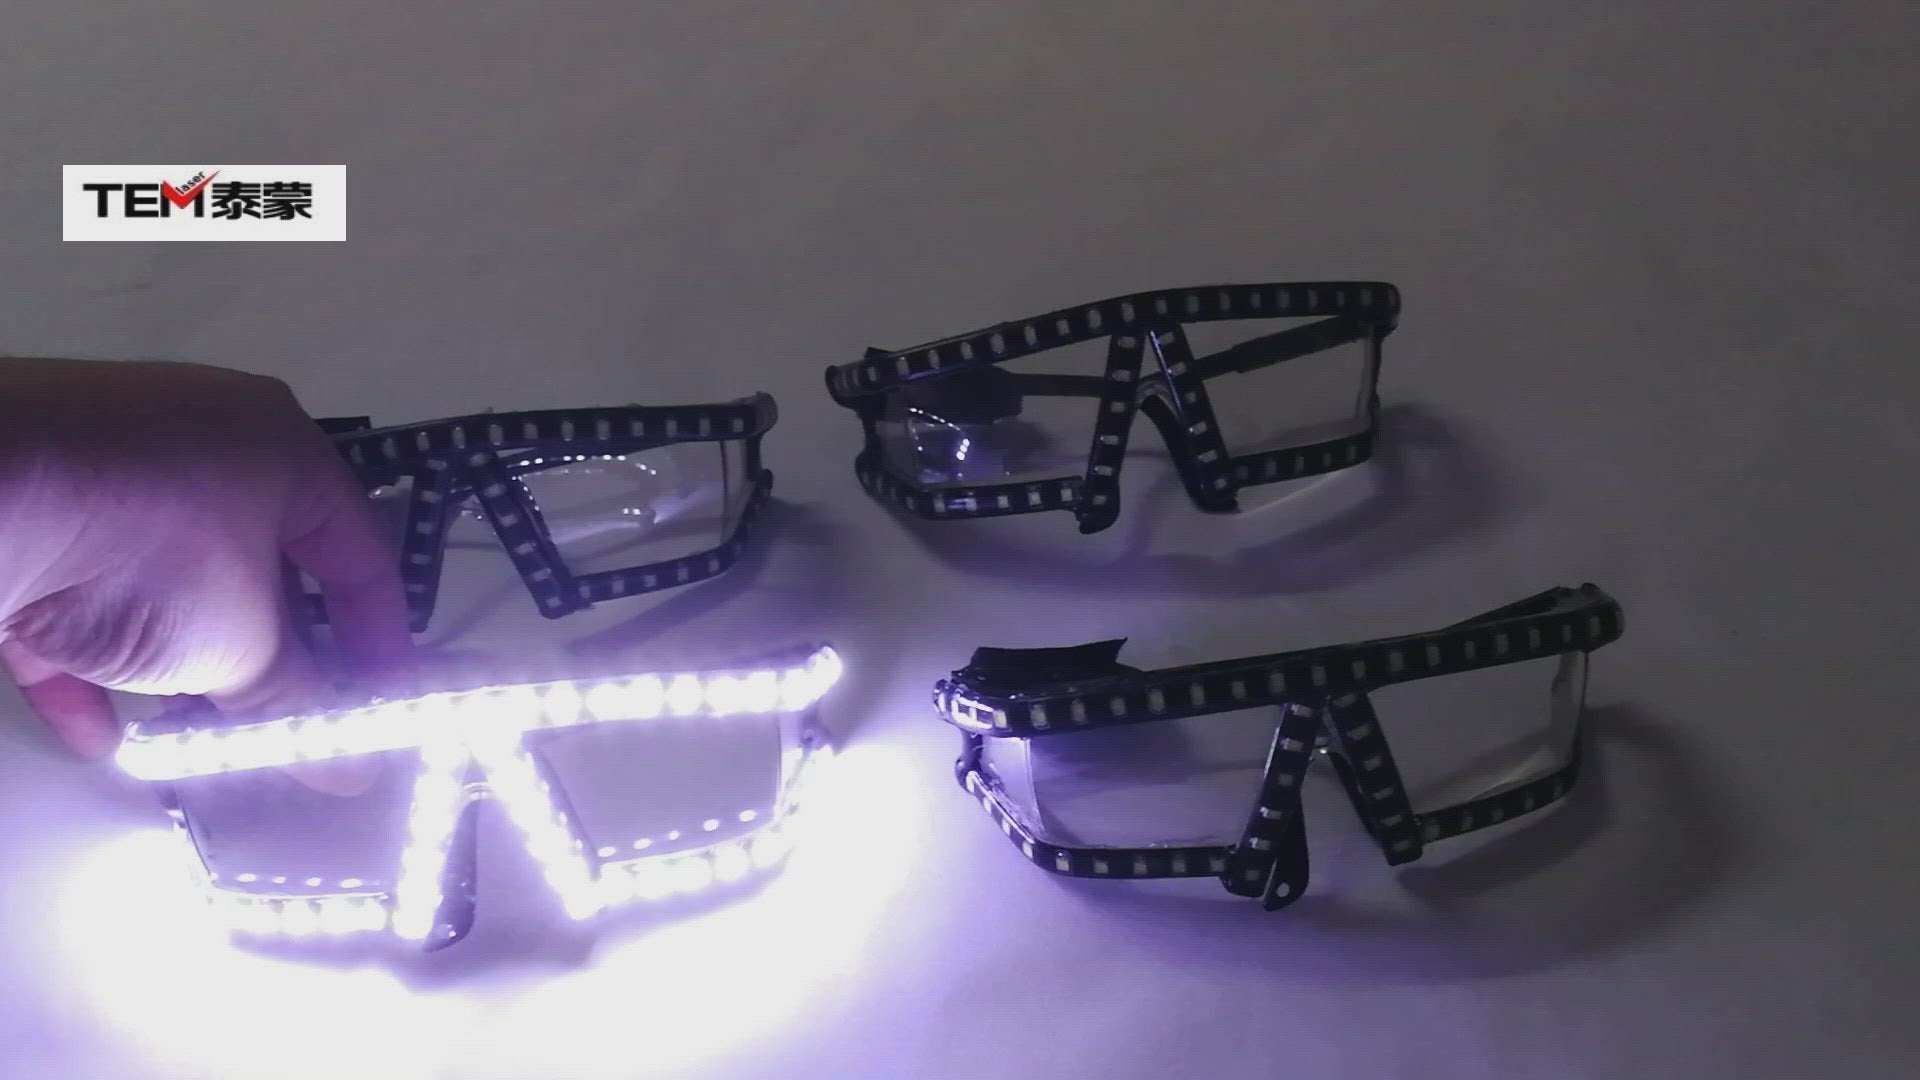 LED Lunettes Rave LED Glow Glasses Party pour Pâques Noël Halloween Anniversaire Night Bar Performance Stage Costume Vêtements